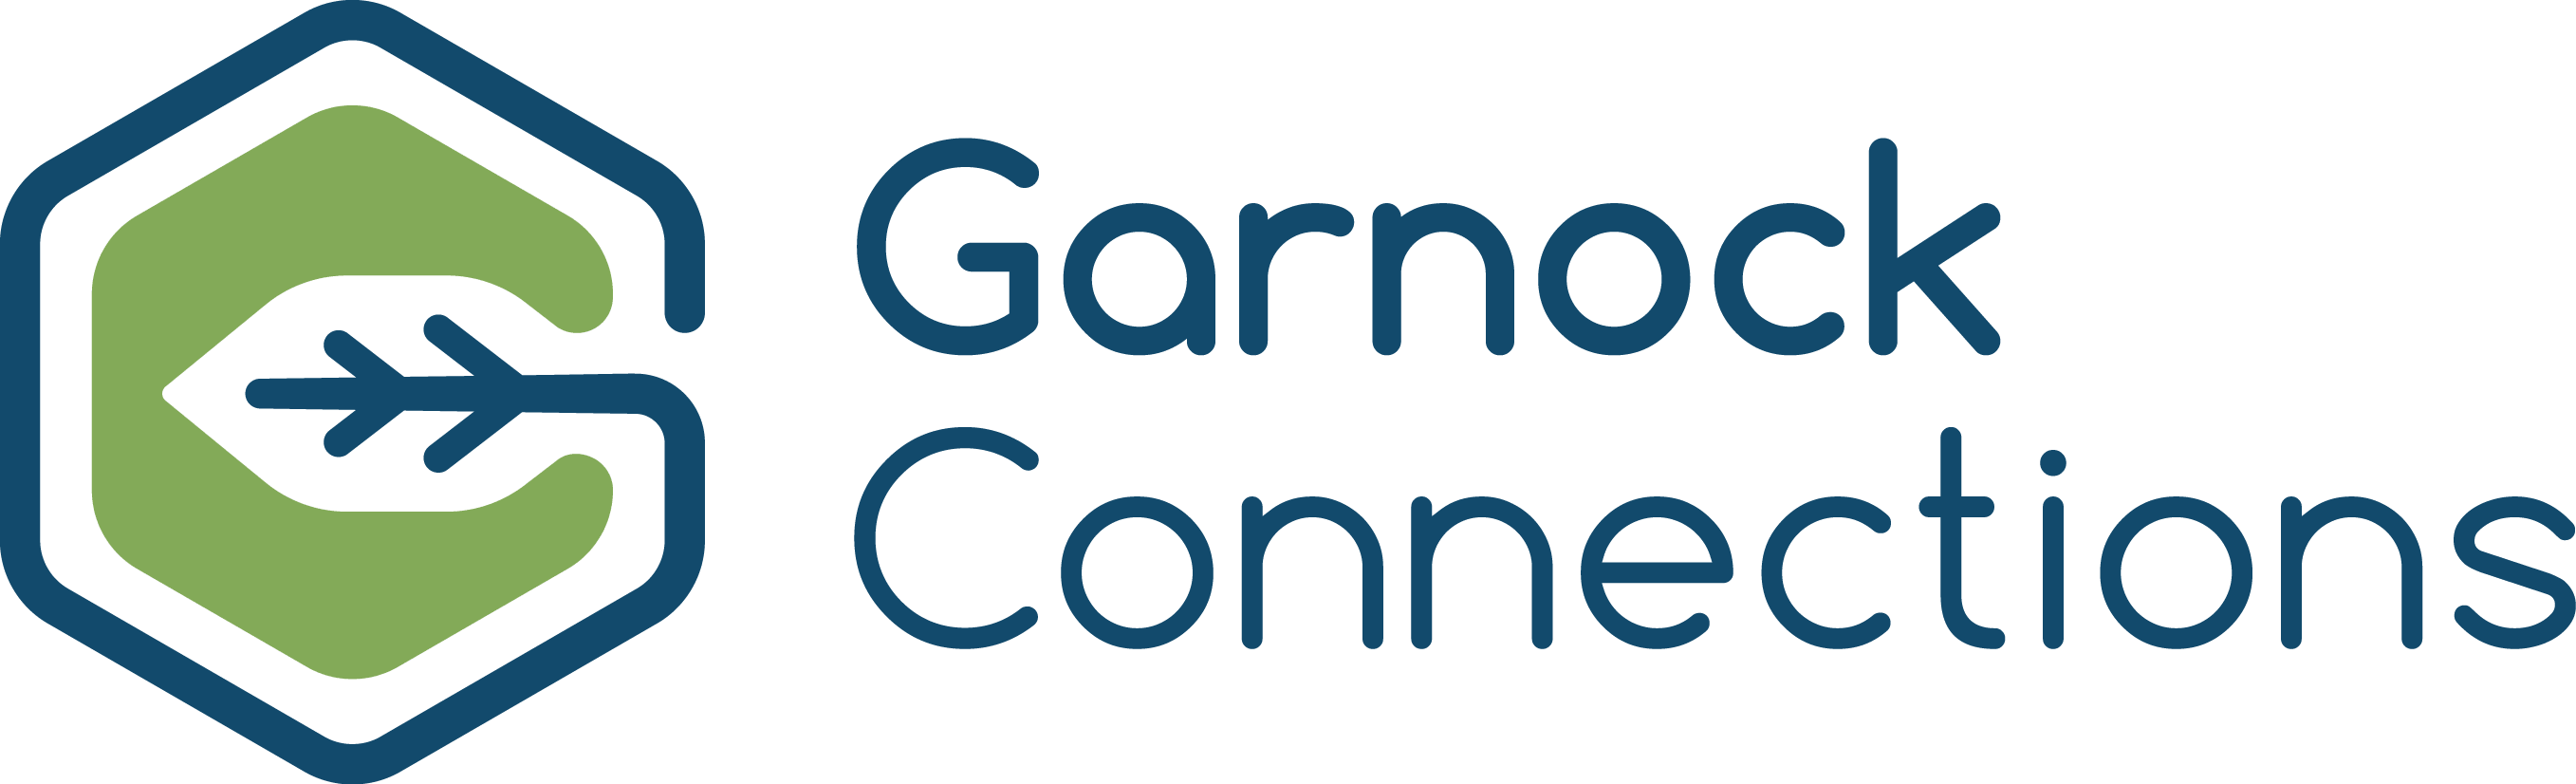 Garnock Connections